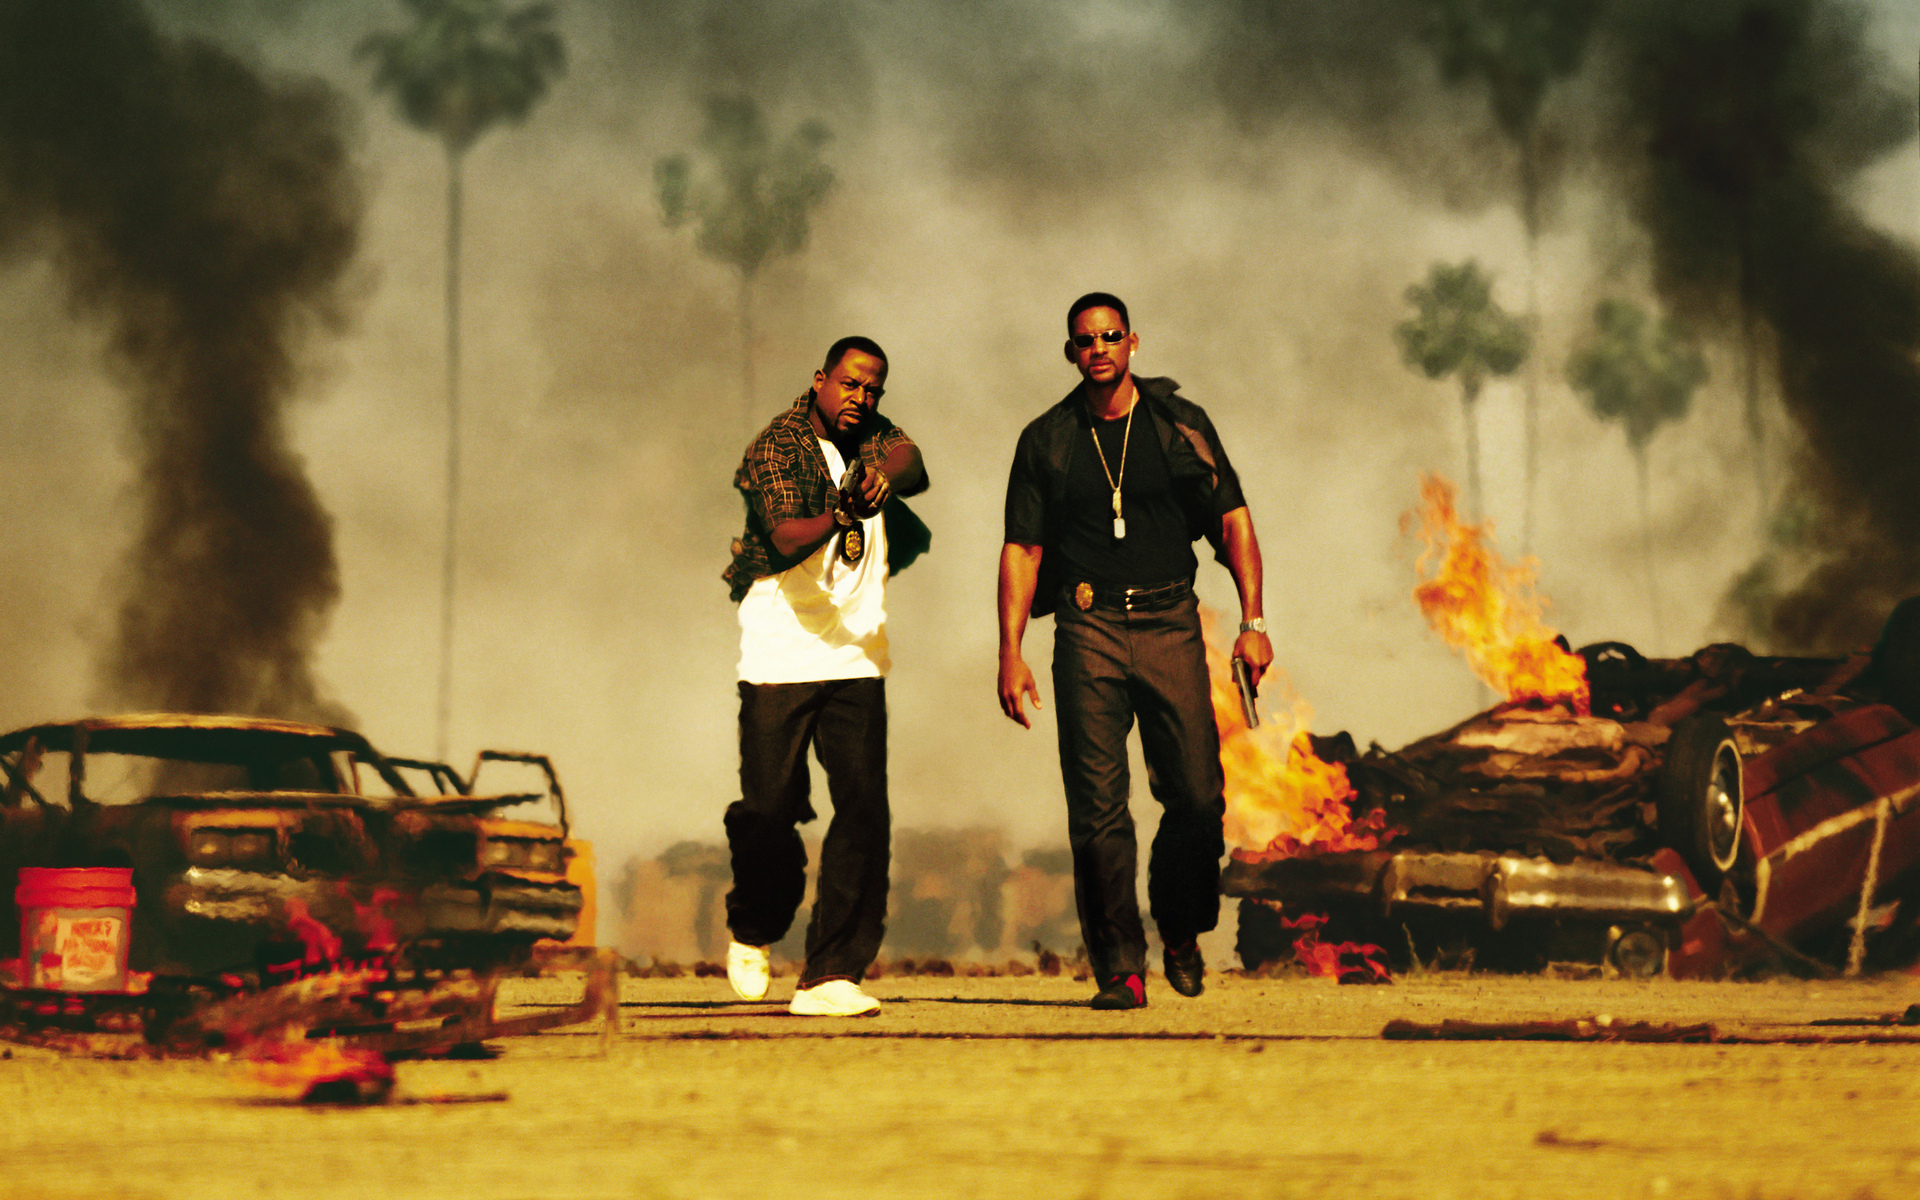 Bad Boys 2 Explosion Violence Fire Flames Will Smith Actor